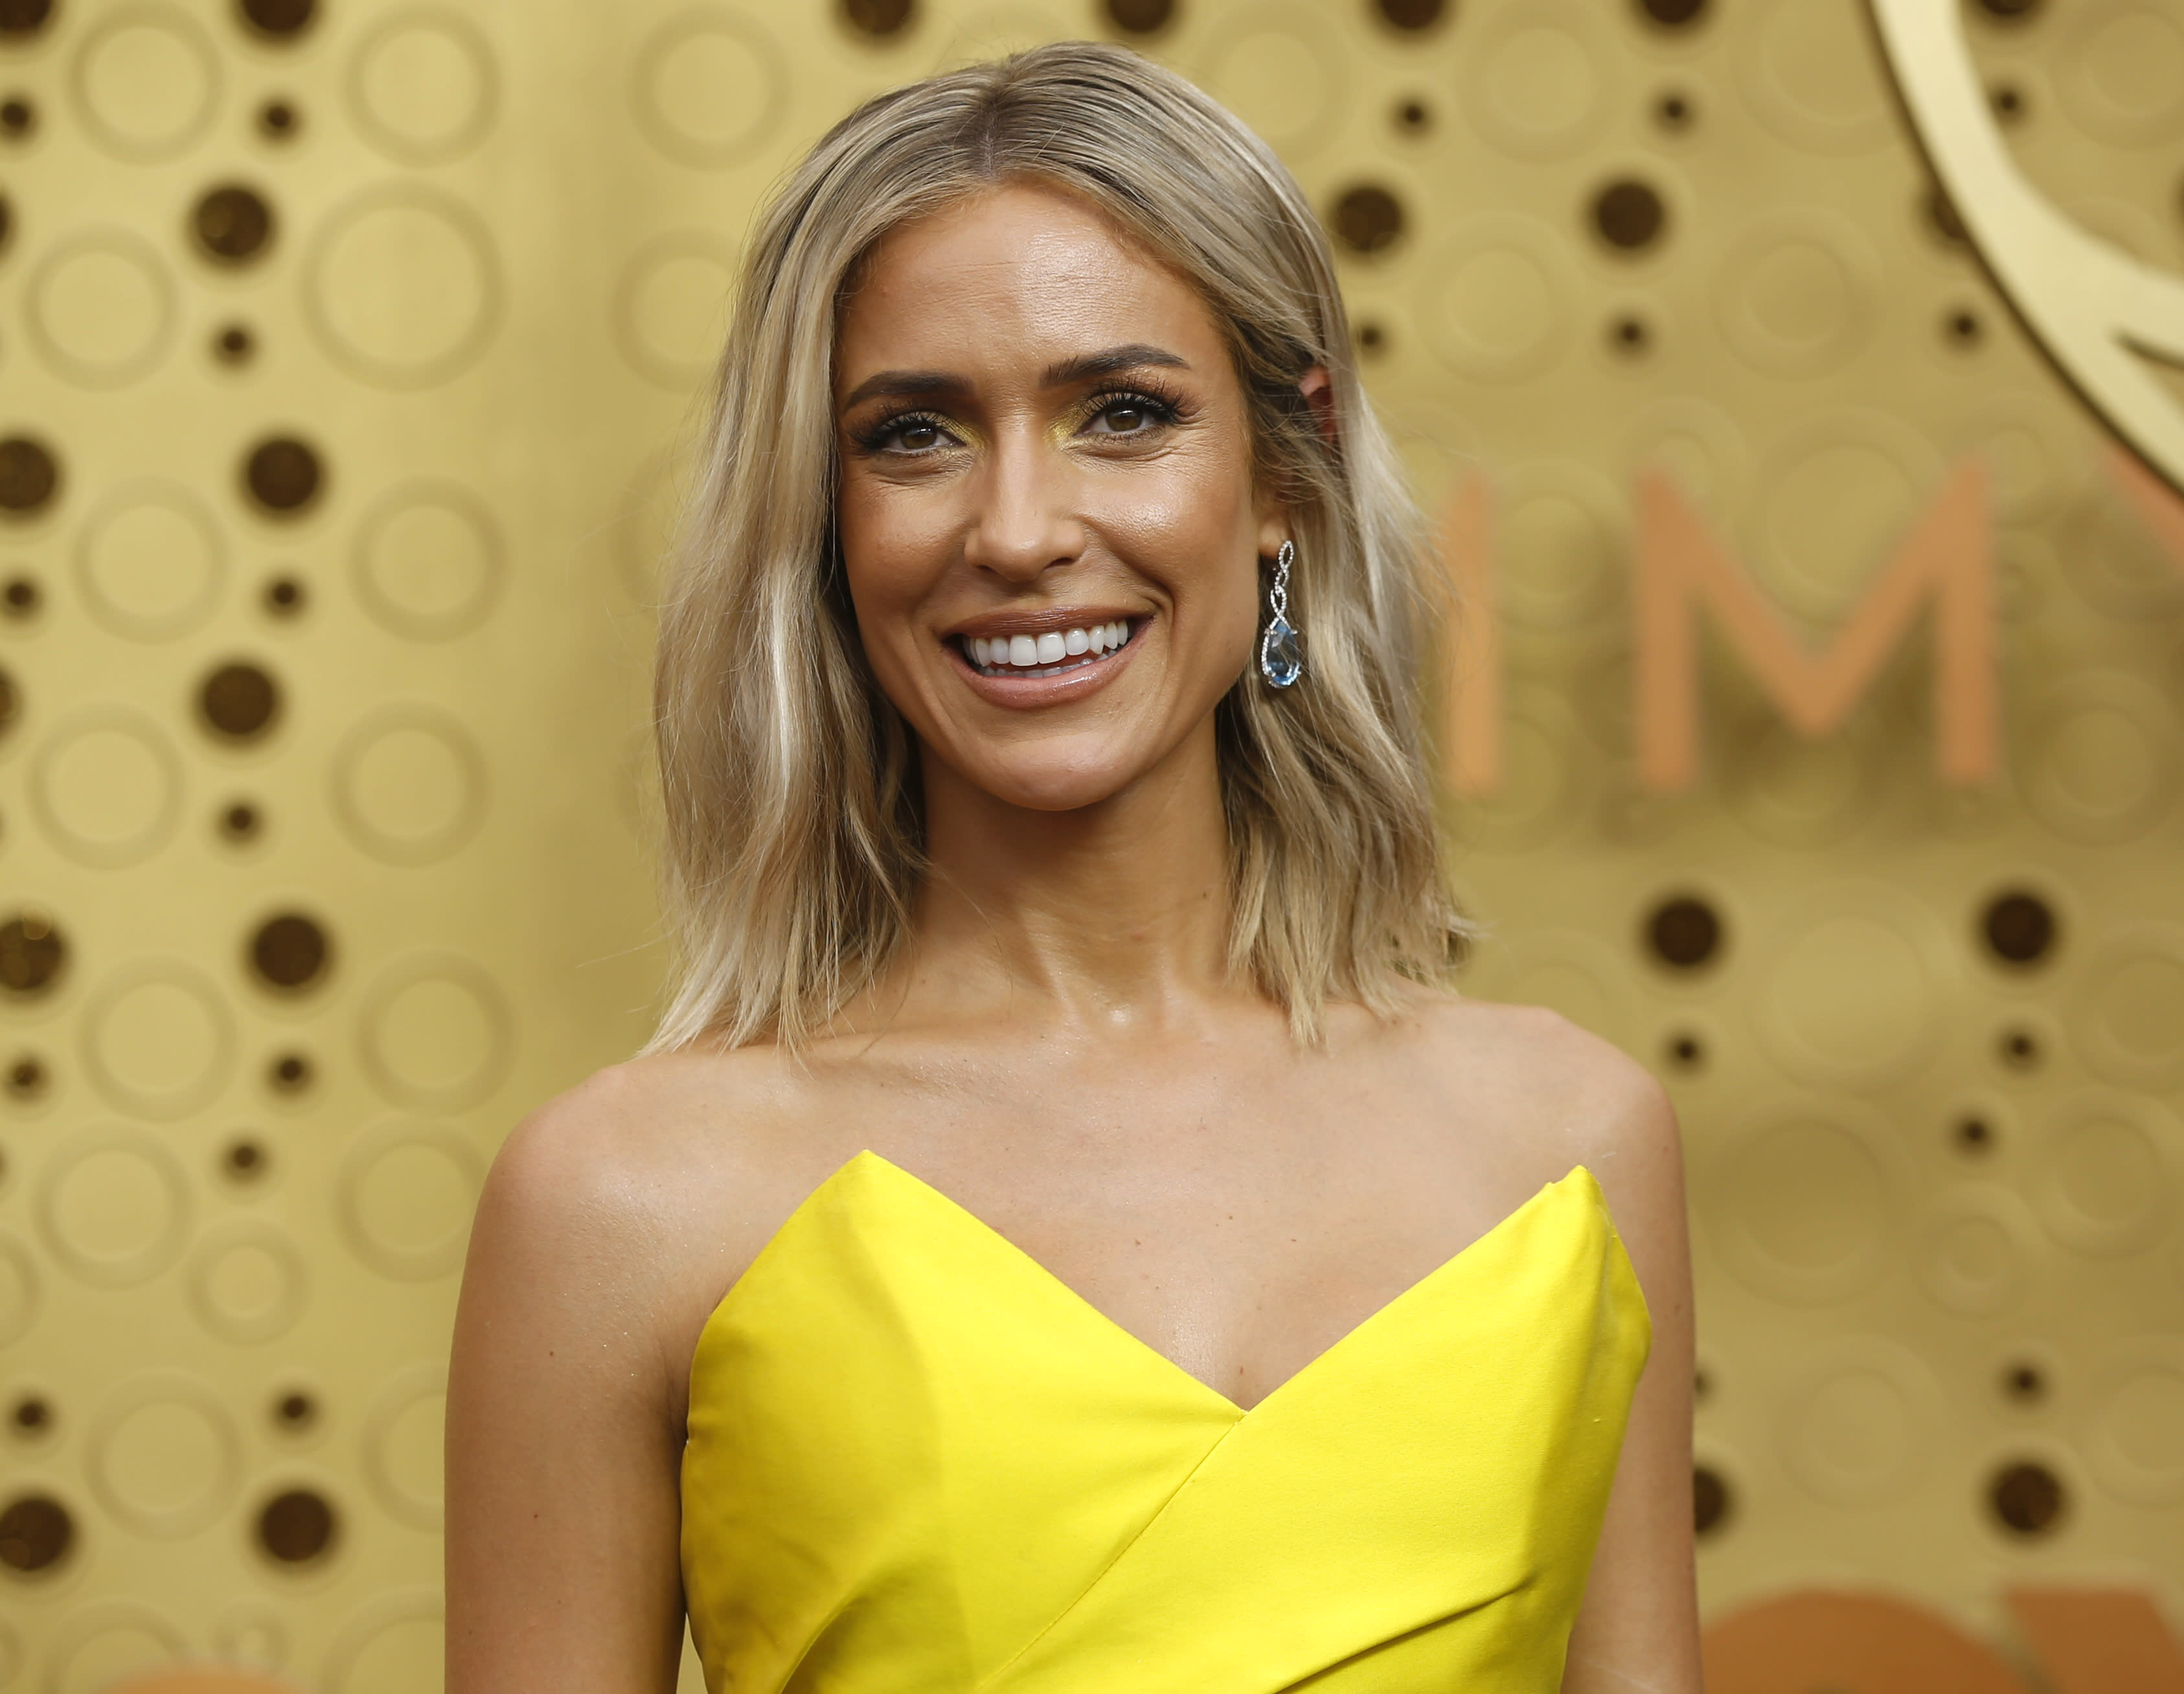 Kristin Cavallari on dating, 'Laguna Beach' reunion and that Stephen Colletti photo